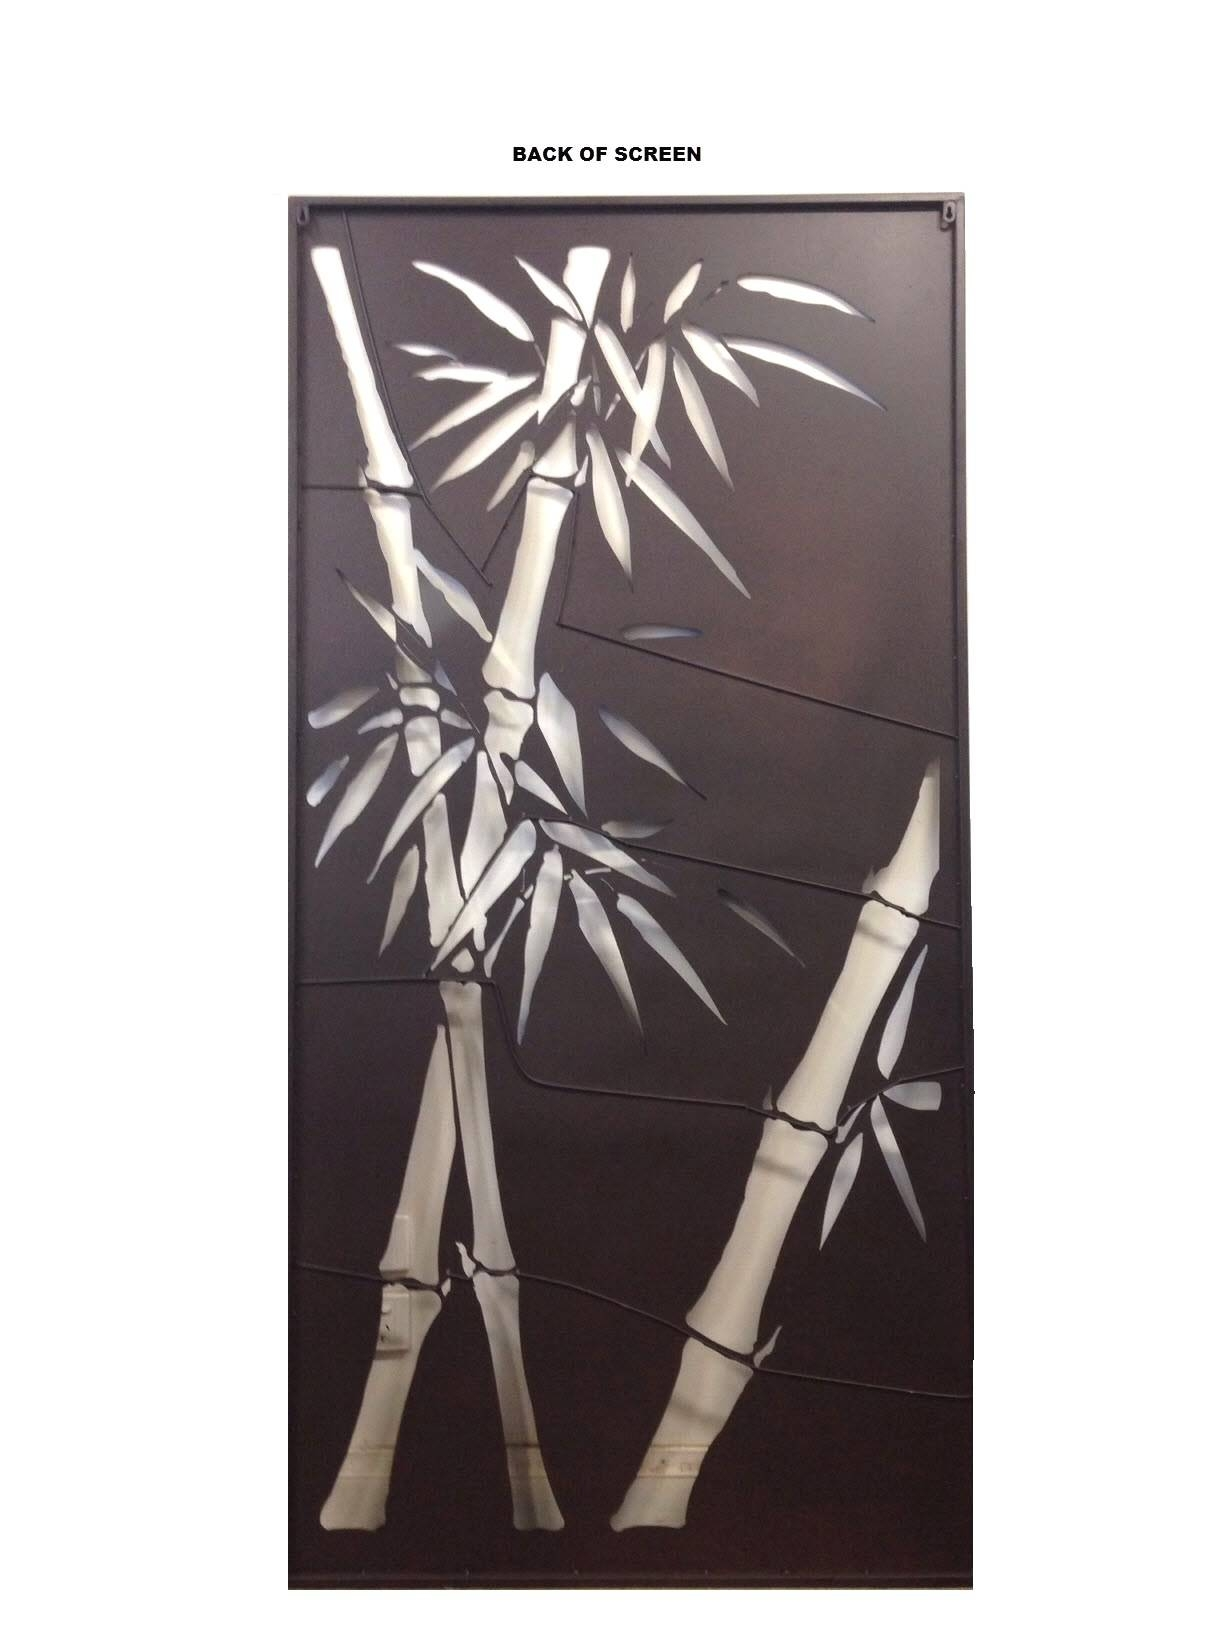 Decorative Metal Screens Wall Art Garden Bamboo Ebay ~ Loversiq Intended For Current Bamboo Metal Wall Art (View 10 of 25)